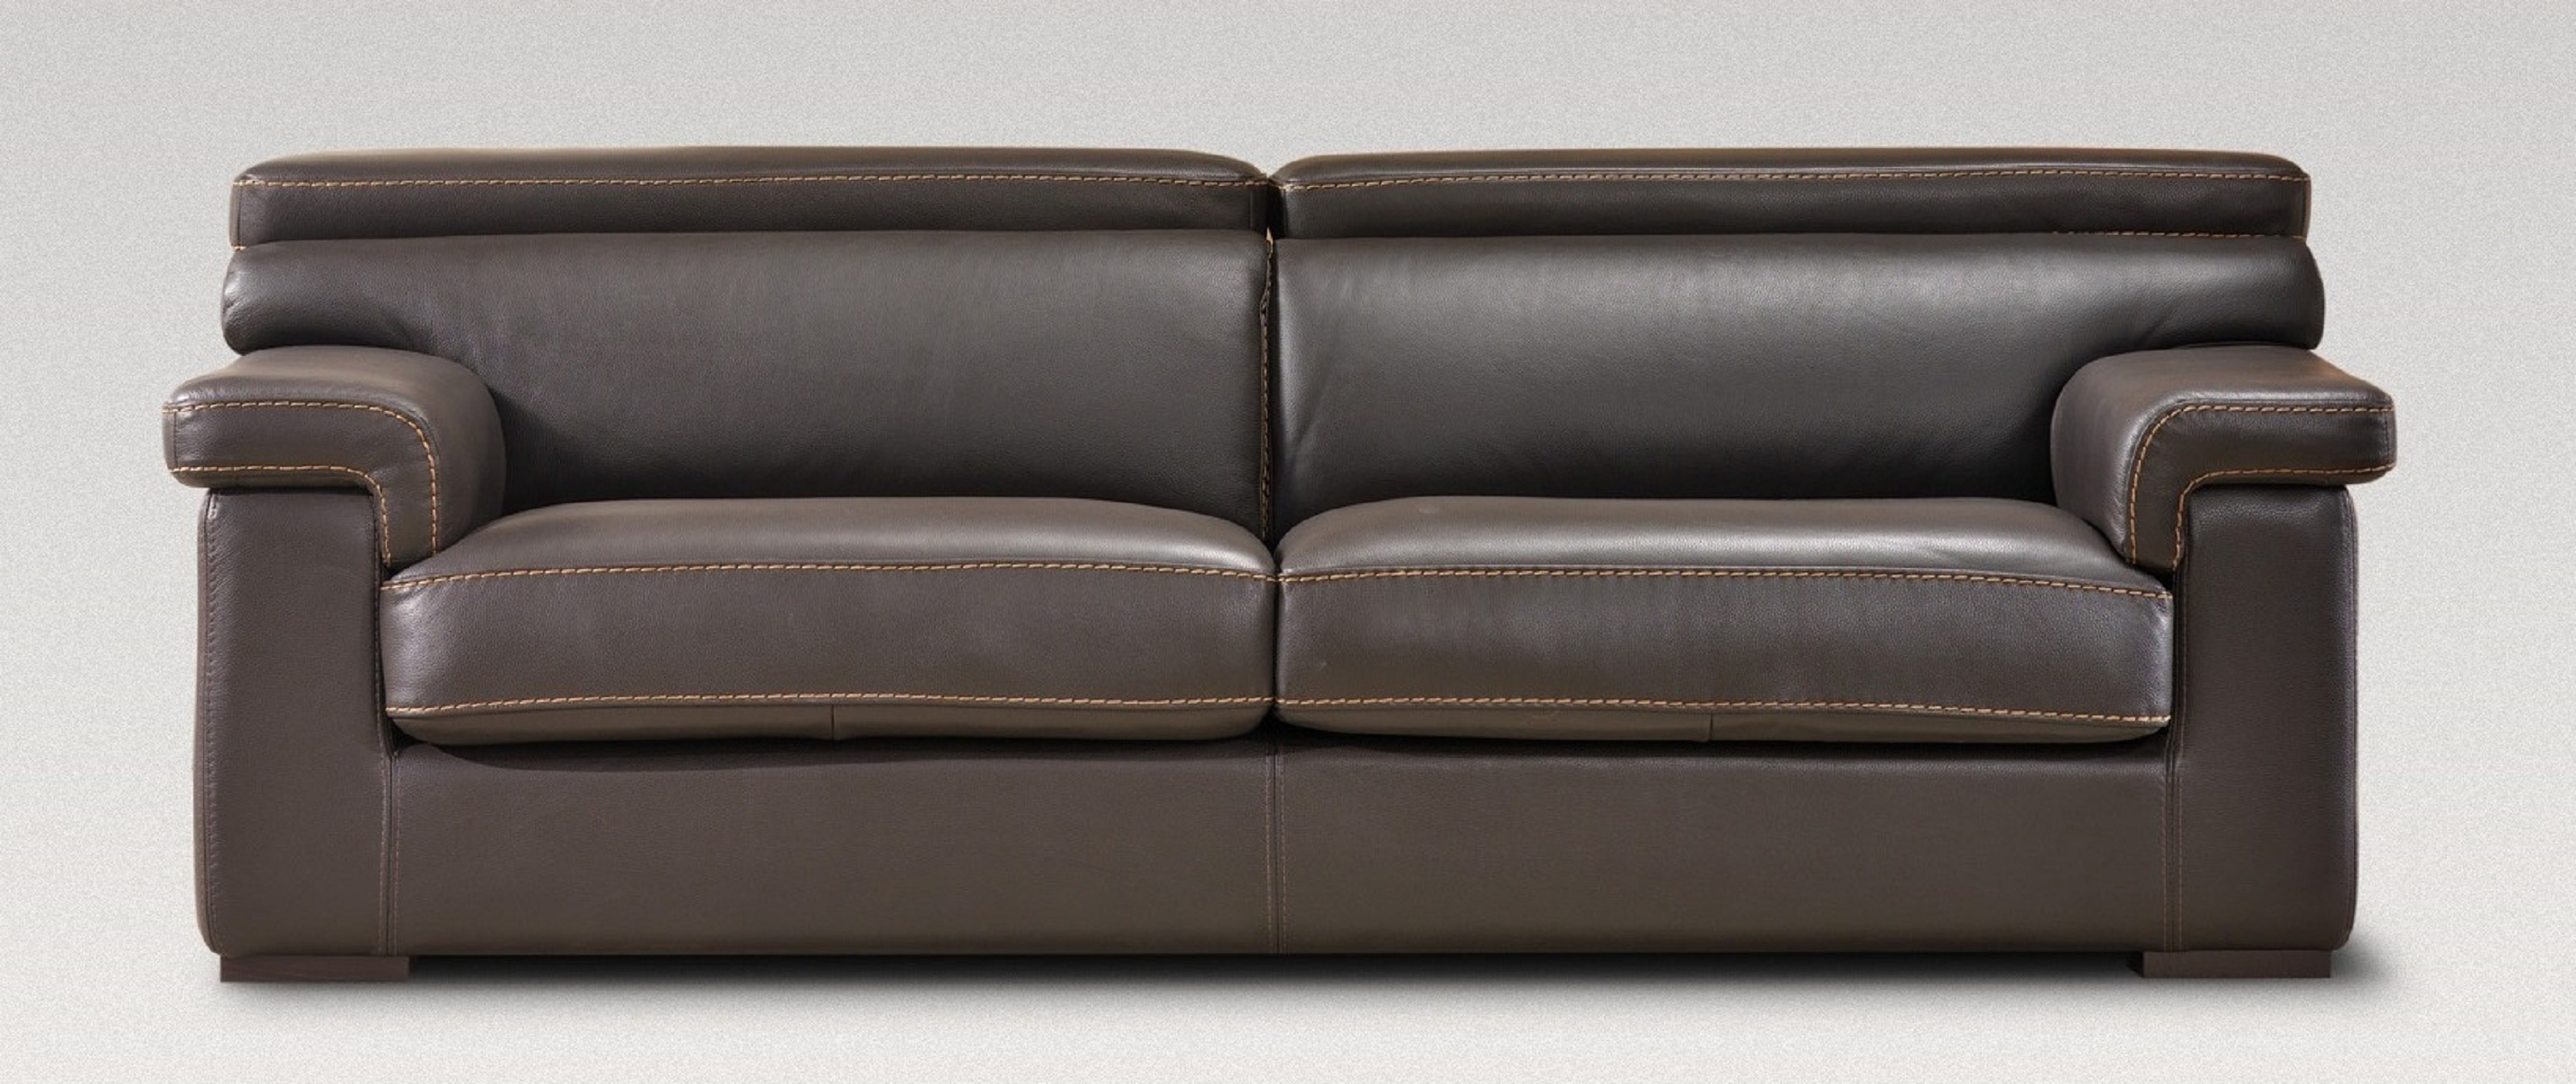 best leather sofa in the world proper height of table uk find italian sofas suites